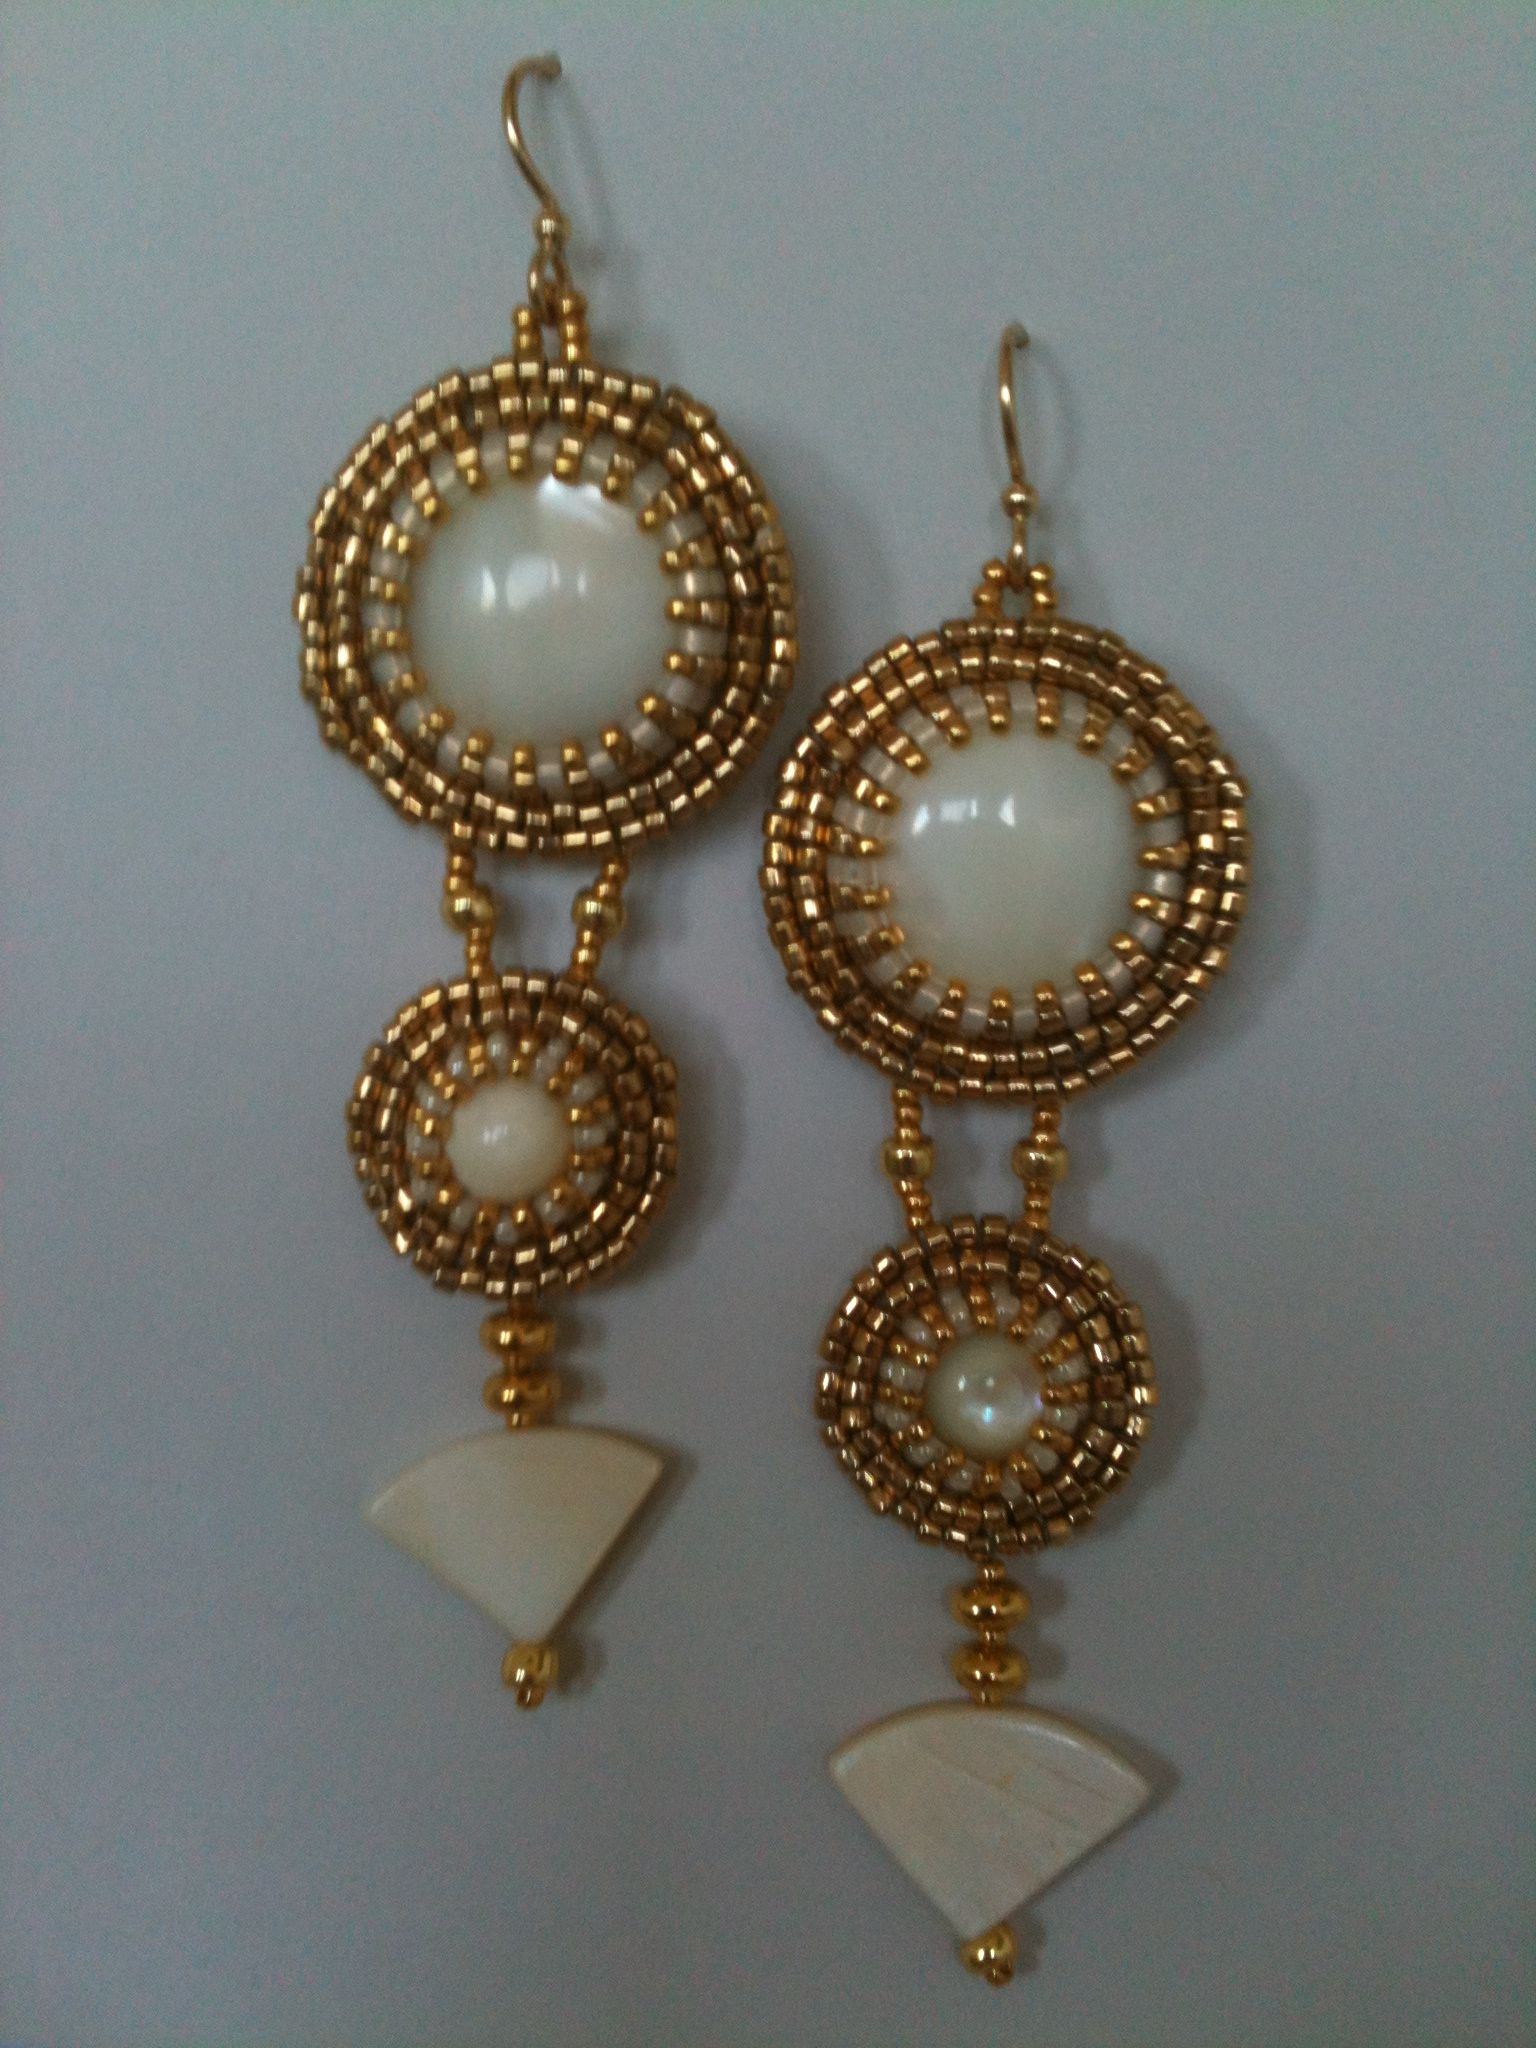 Big mother of pearl & gold earrings by Jeka Lambert.  Bead embroidery.  Mother of pearl cabochons and fan beads, 24K gold plated beads, seed beads.